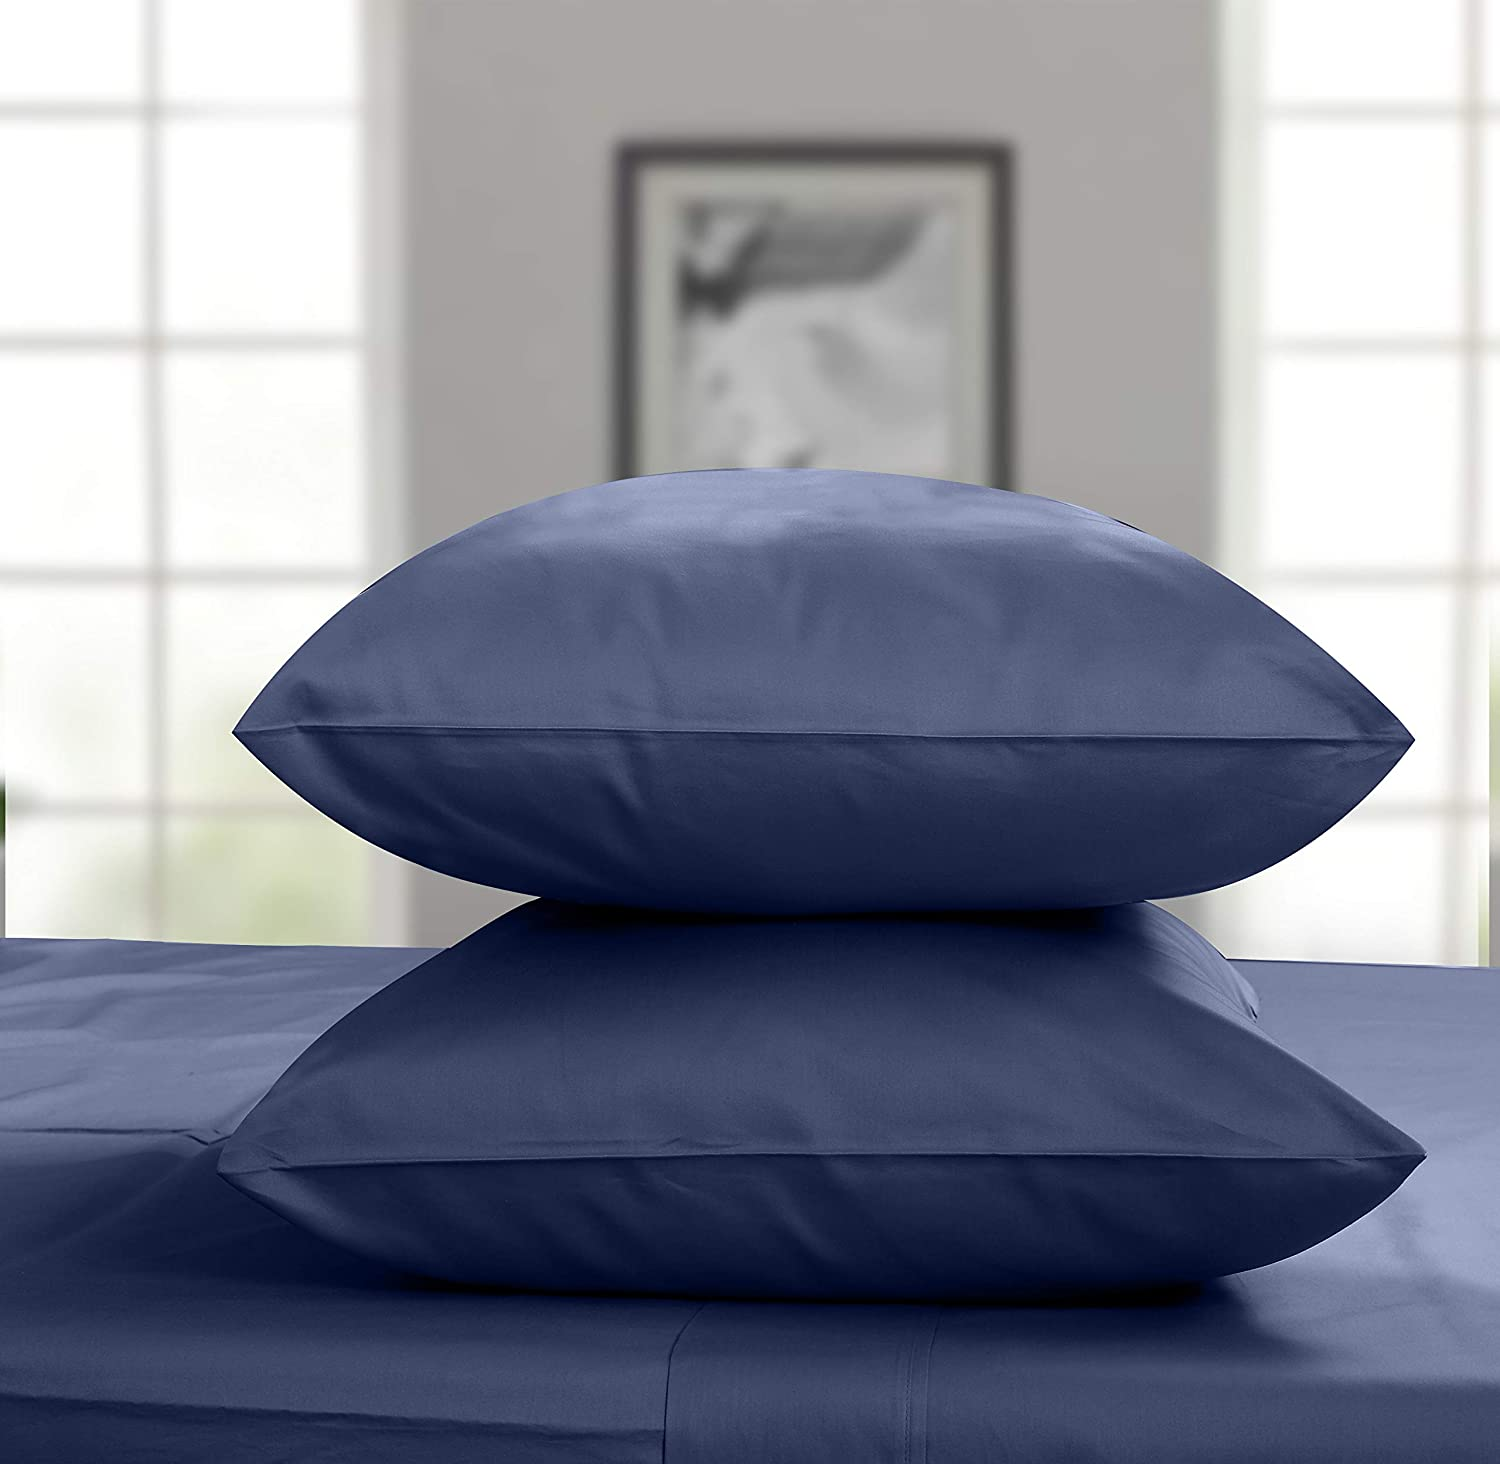 Threadmill Home Linen 600 Thread Count King Pillowcase Set of 2-100% Cotton King Pillow Cases, Breathable Luxury Smooth Solid Sateen Folkstone Blue